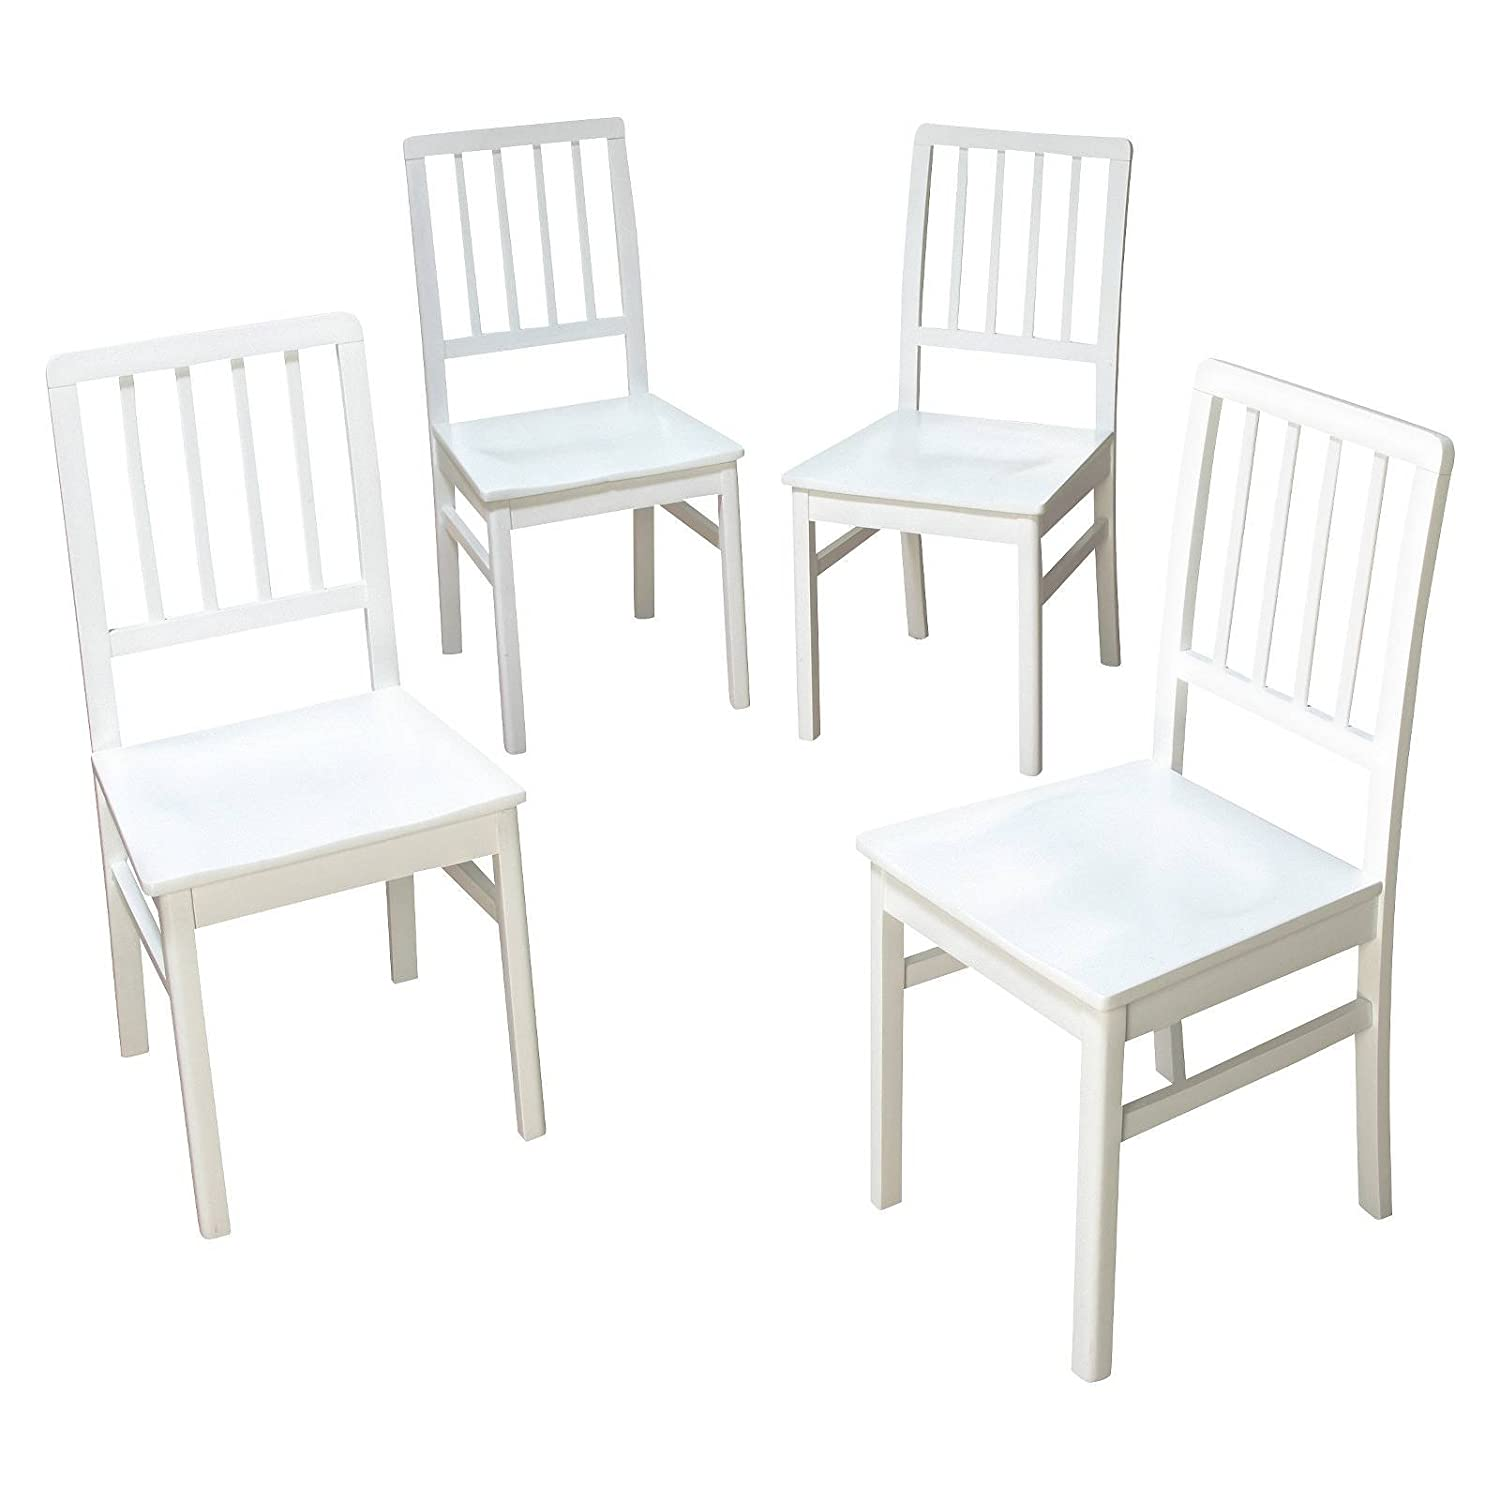 sc 1 st  Amazon.com & Amazon.com - TMS Camden Dining Chair White Wash Set of 4 - Chairs